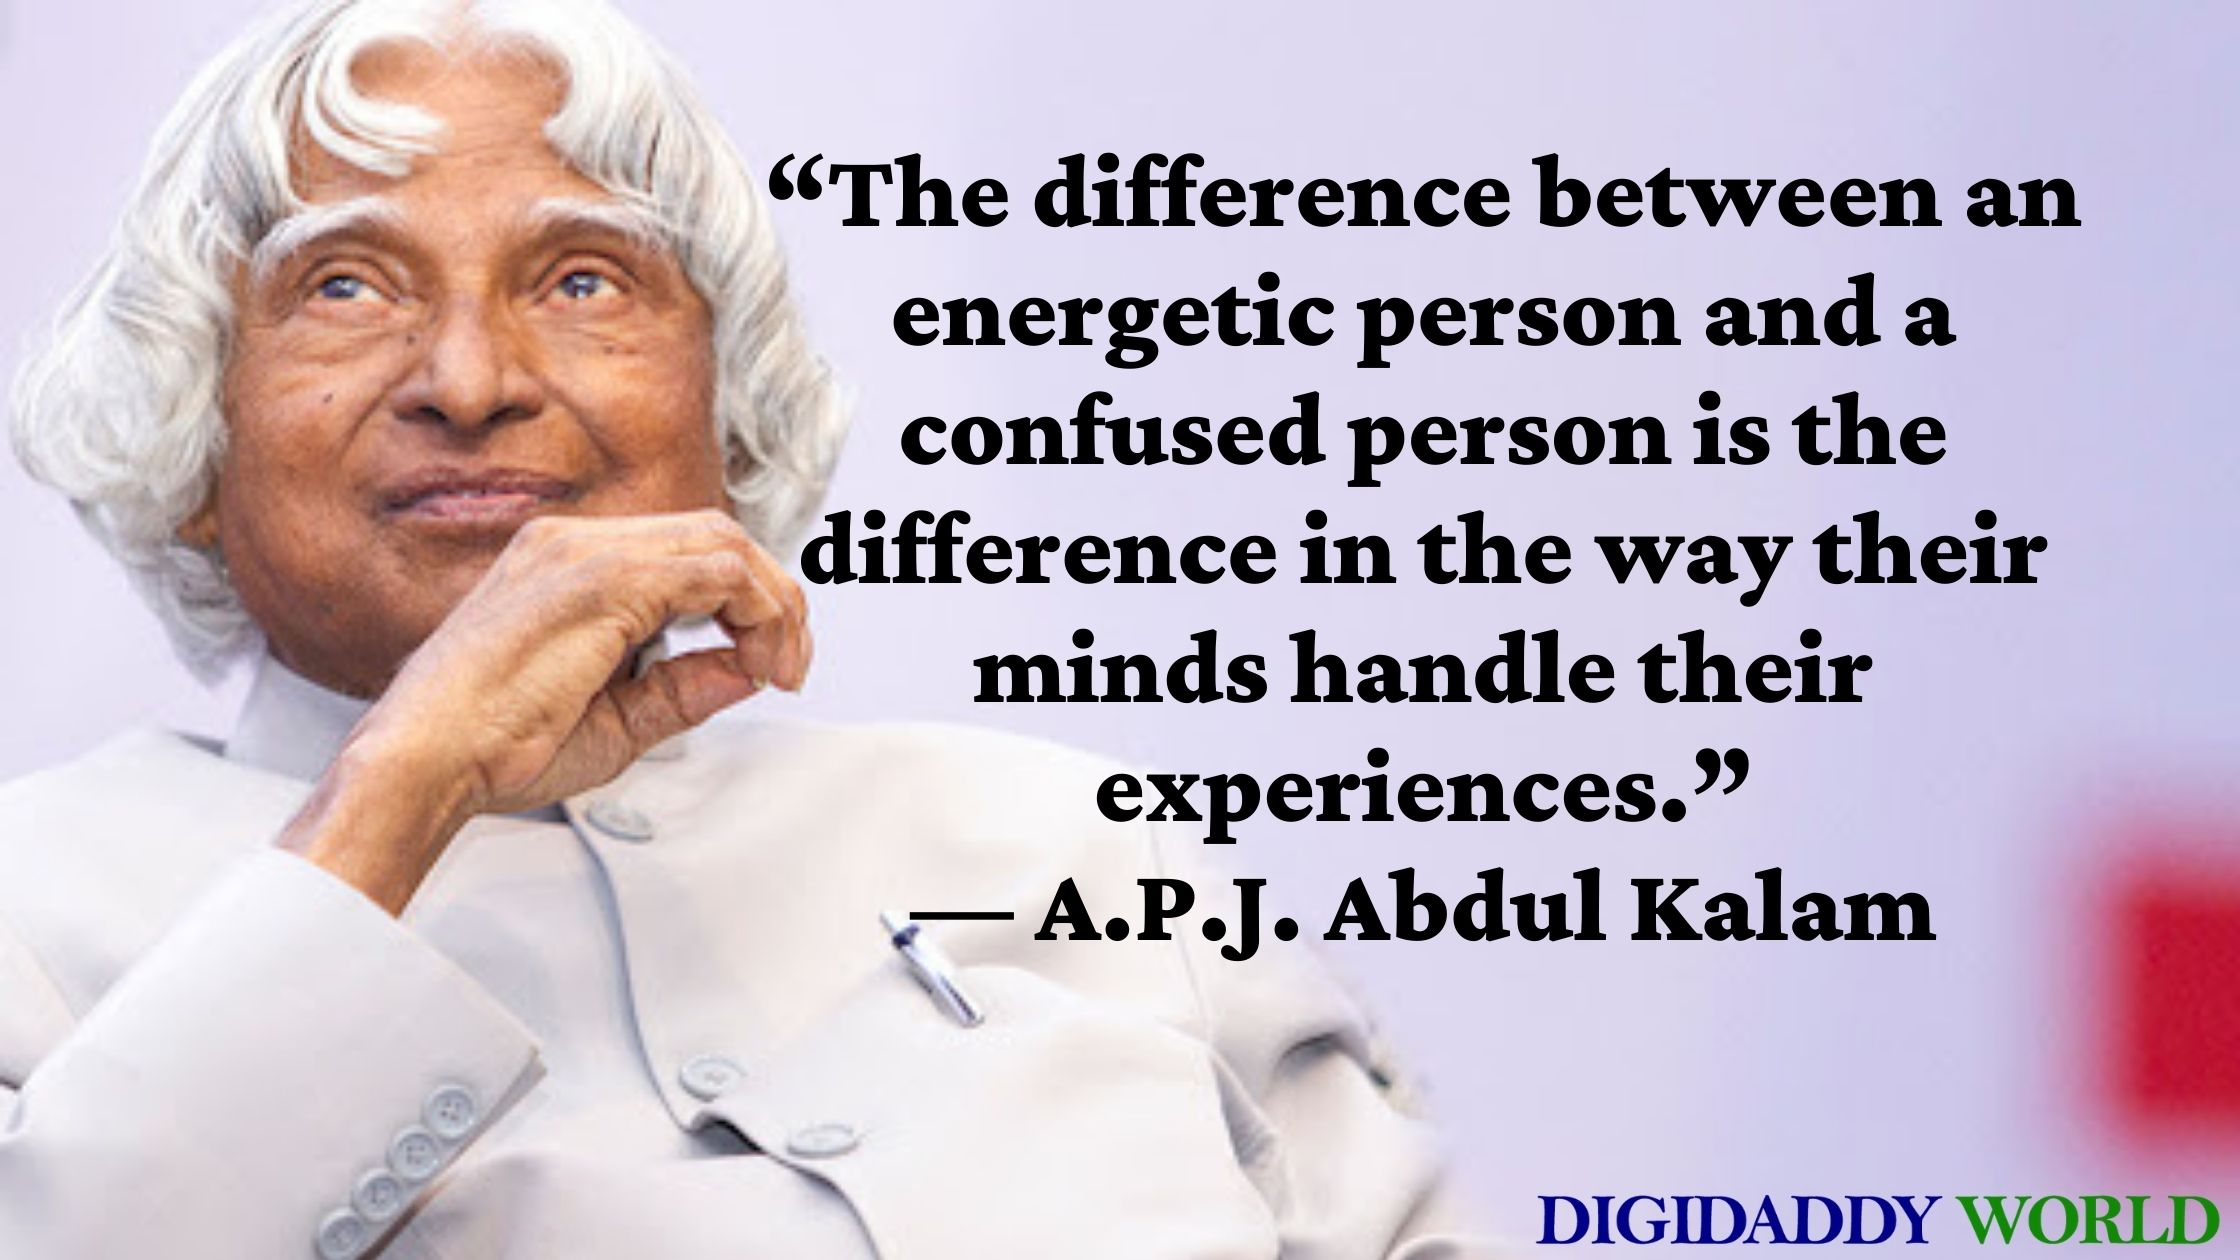 Famous Quotes of Dr. A.P.J. Abdul Kalam on Education